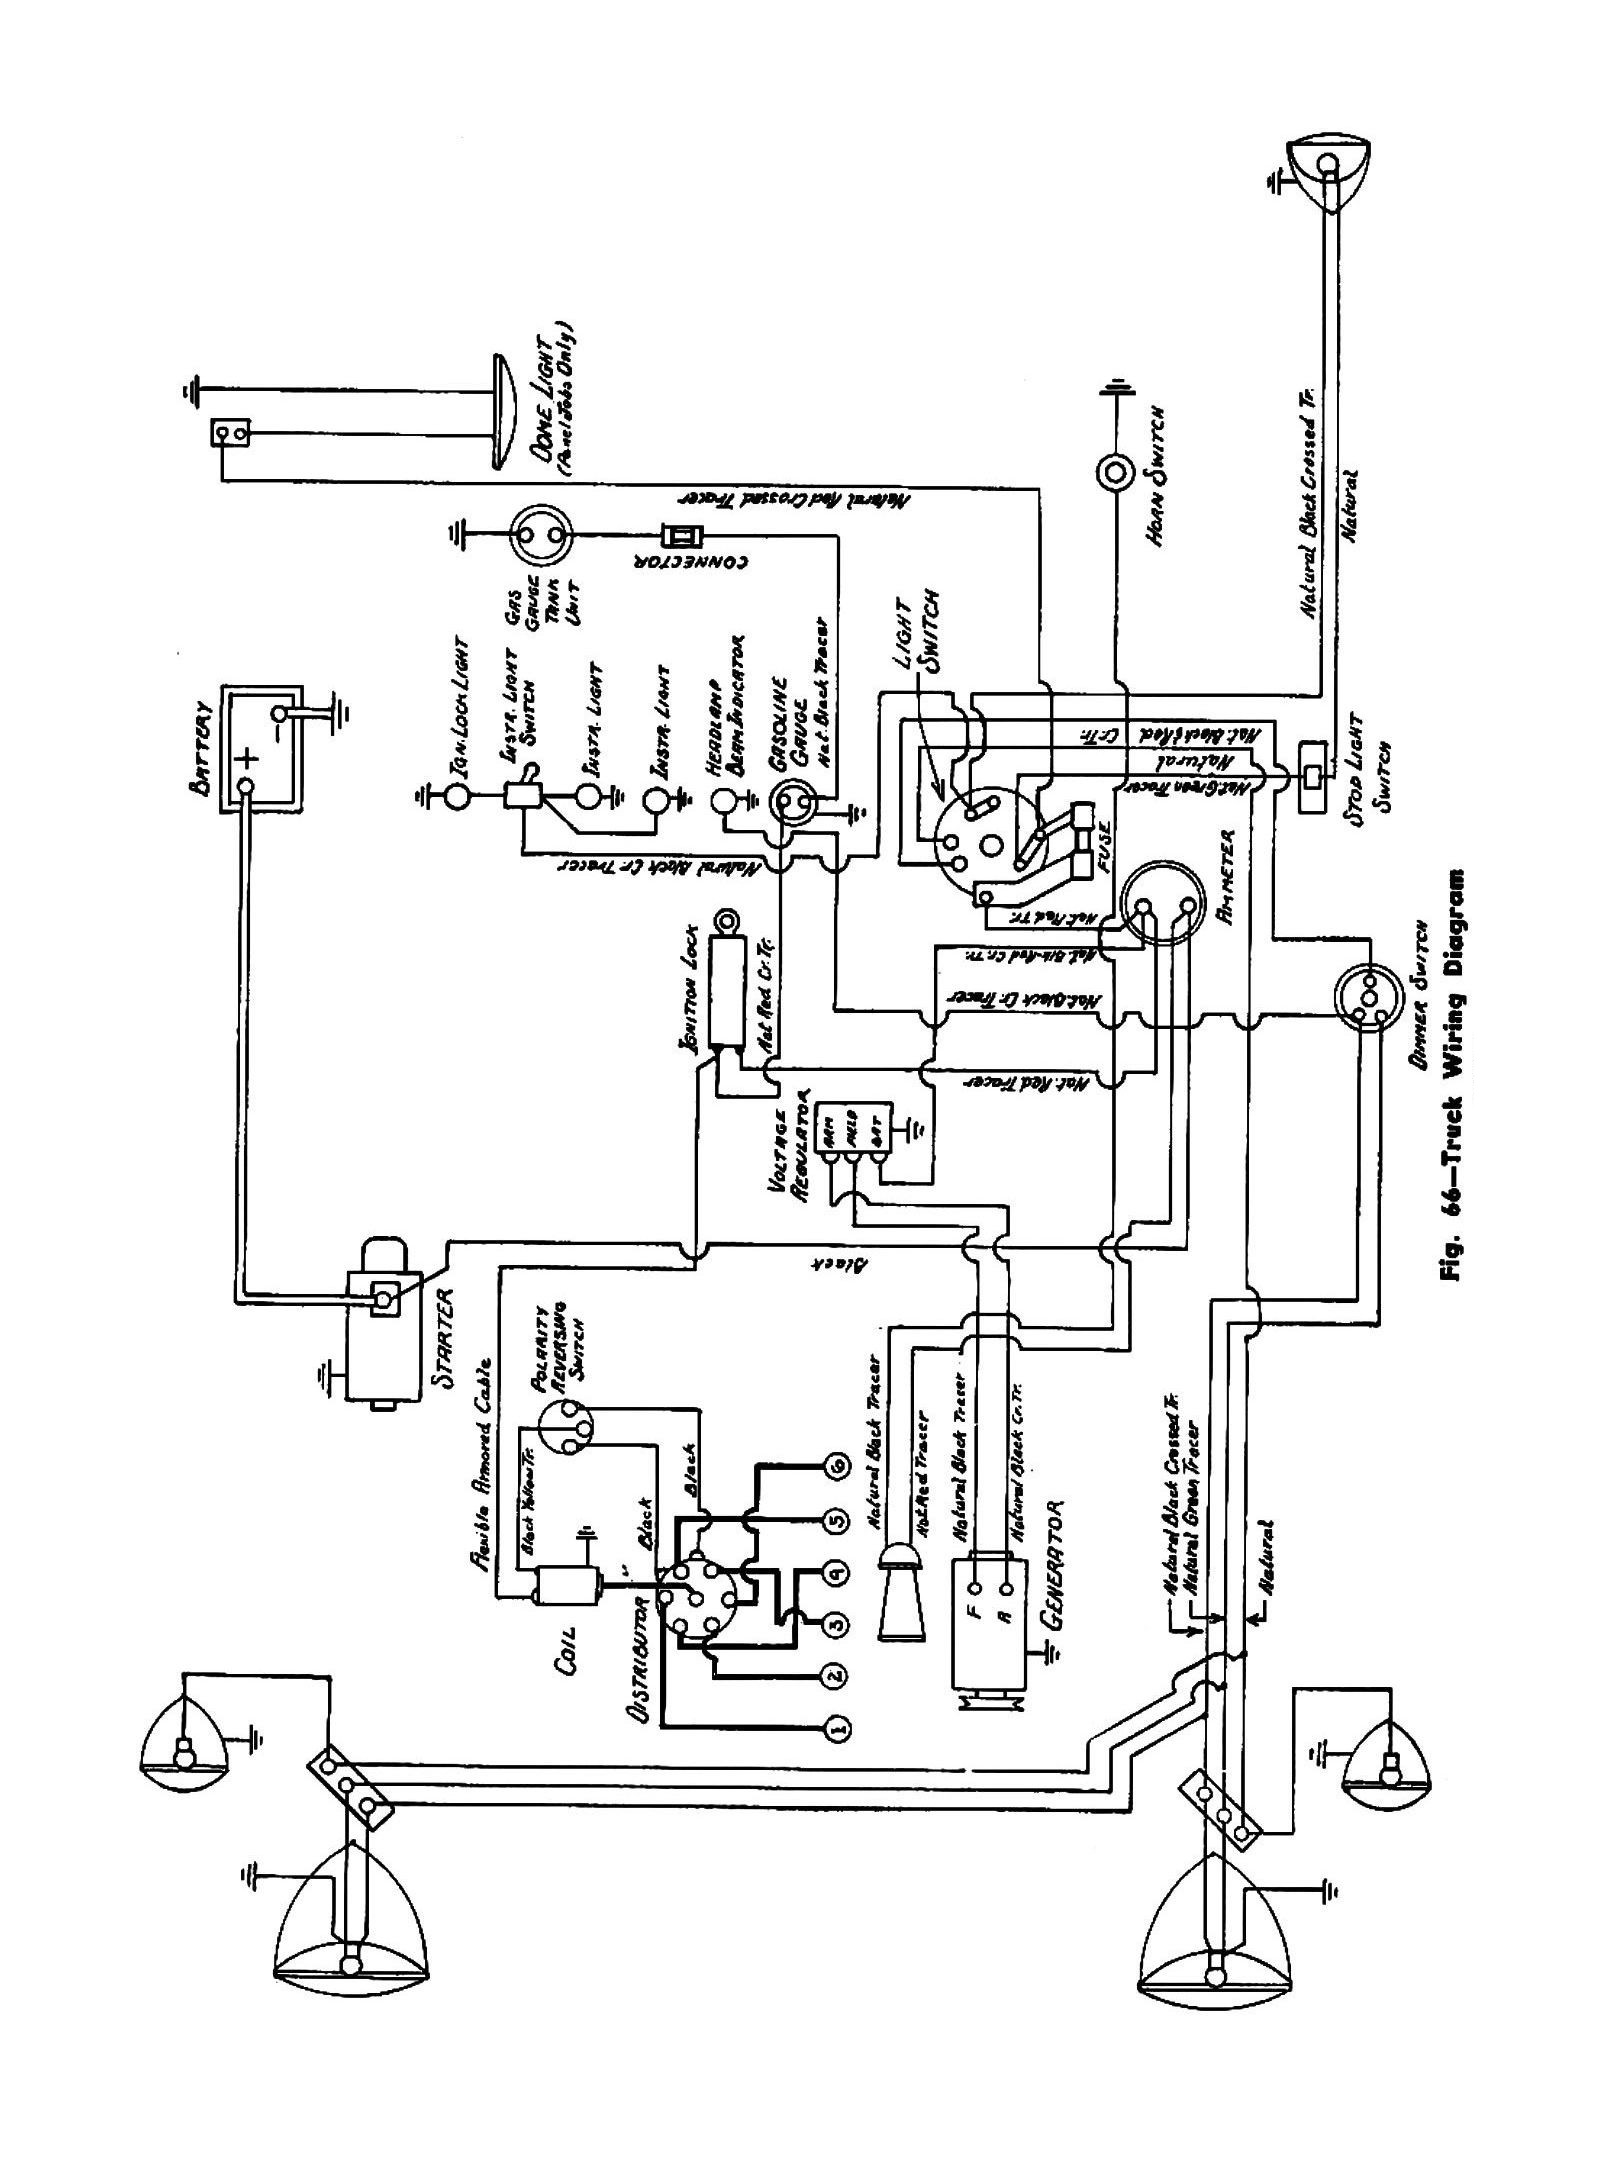 45truck 1968 chevy pickup wiring diagram wiring diagram simonand ford truck wiring harness at nearapp.co